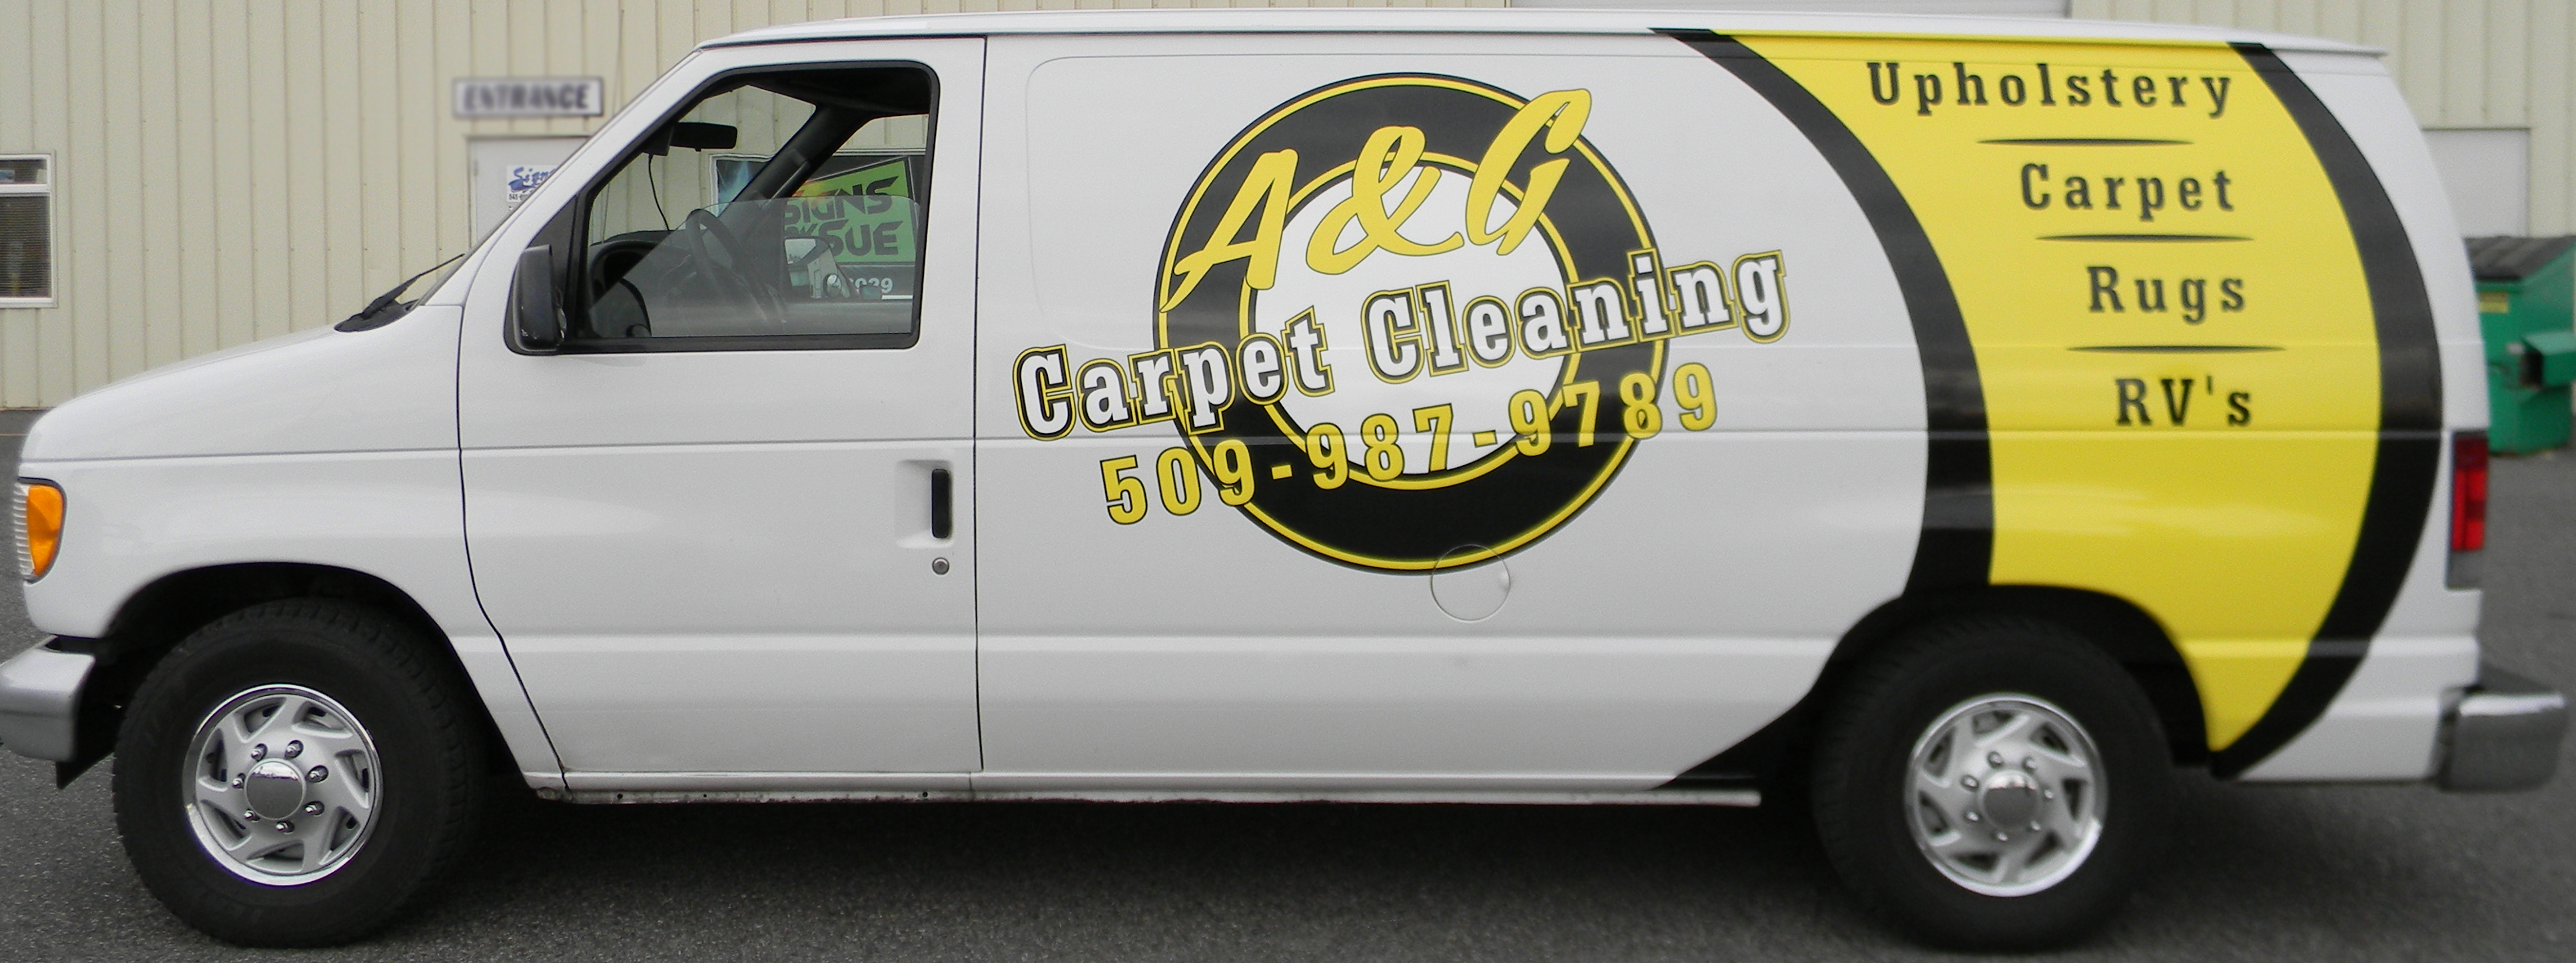 A&G Carpet Cleanning_Drive Side.JPG